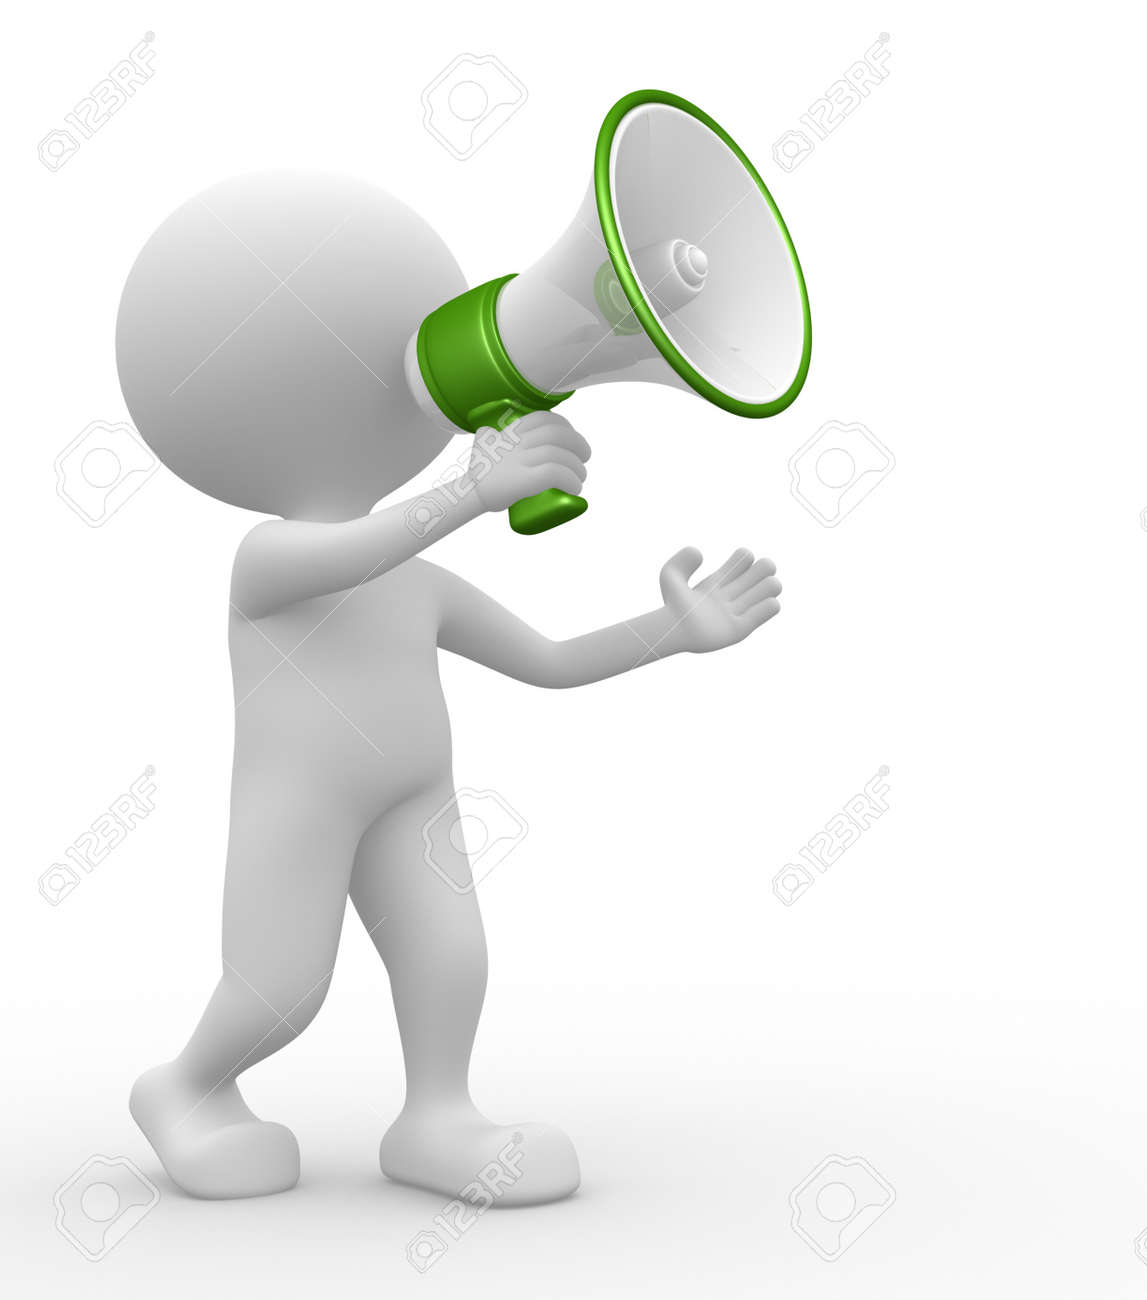 3d people - man, person with a megaphone Stock Photo - 21138610